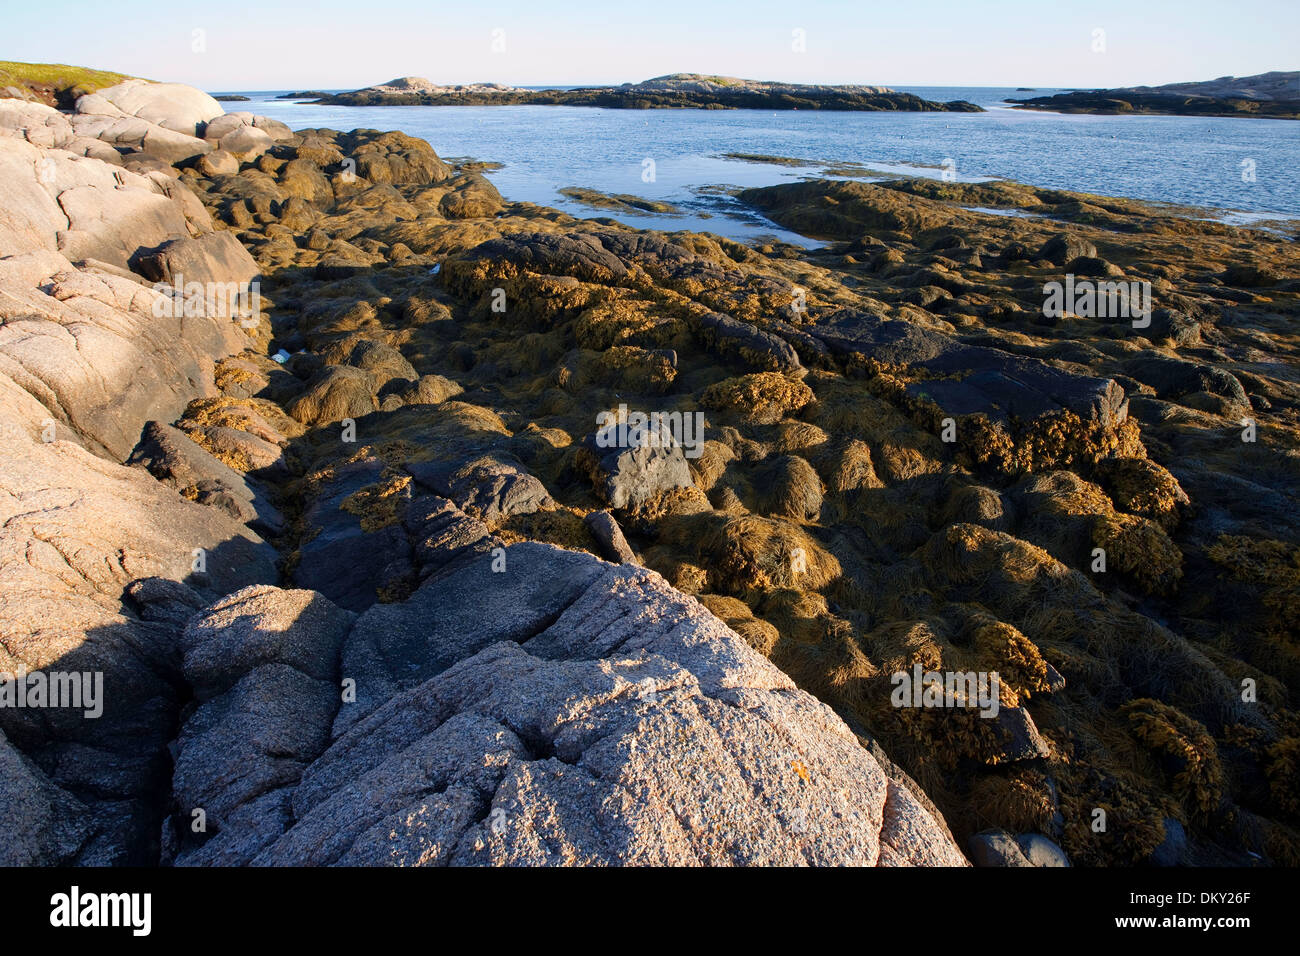 Rockweed on ledge exposed at low tide, Eastern Maine - Stock Image